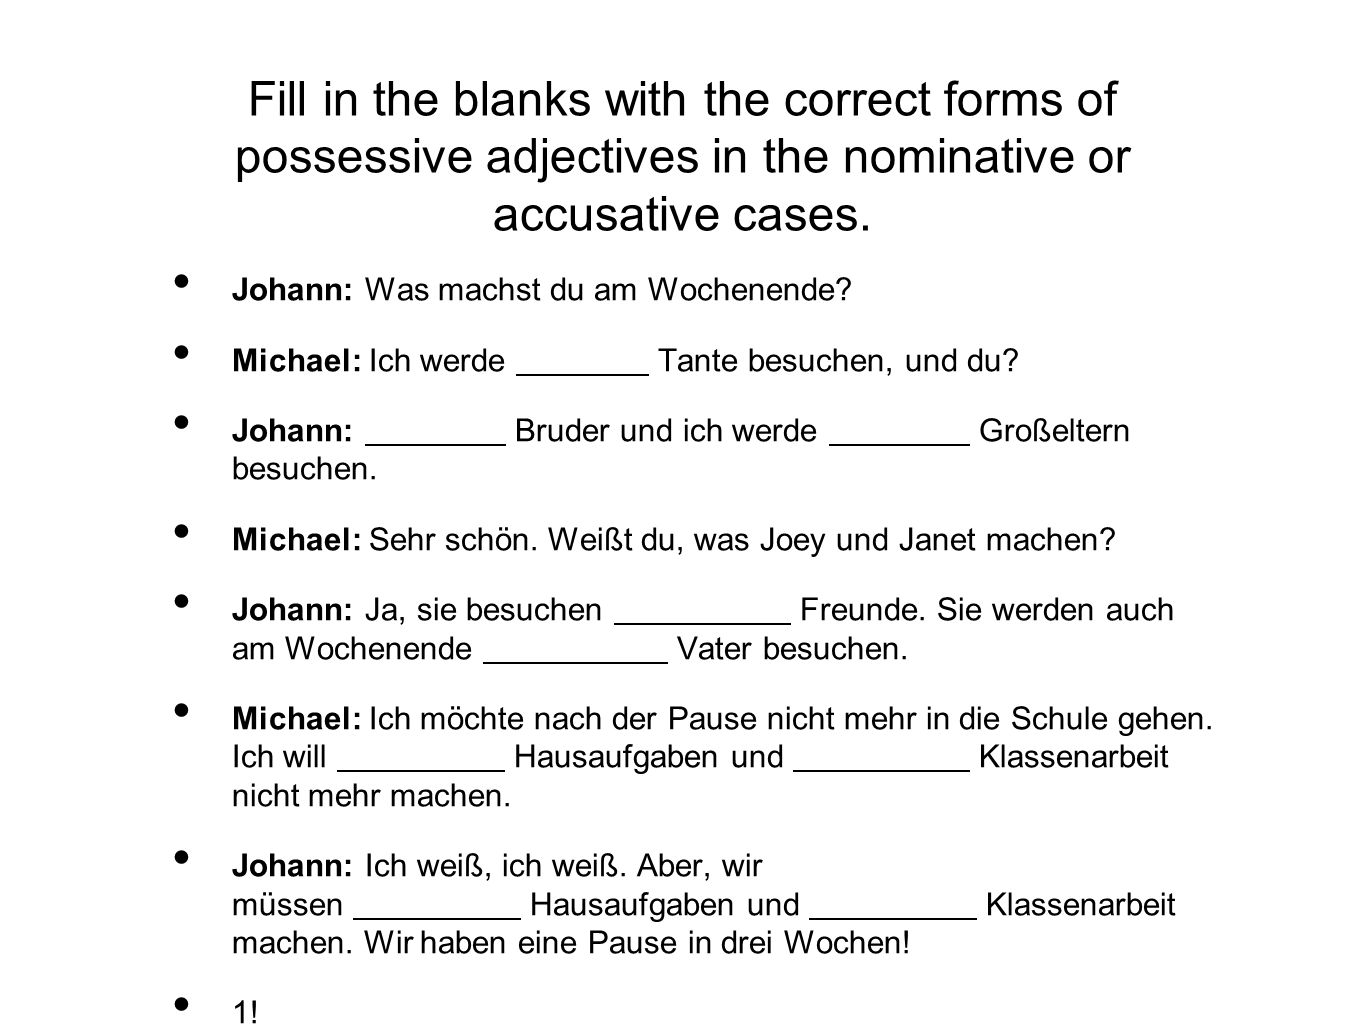 Fill in the blanks with the correct forms of possessive adjectives in the nominative or accusative cases. Johann: Was machst du am Wochenende? Michael